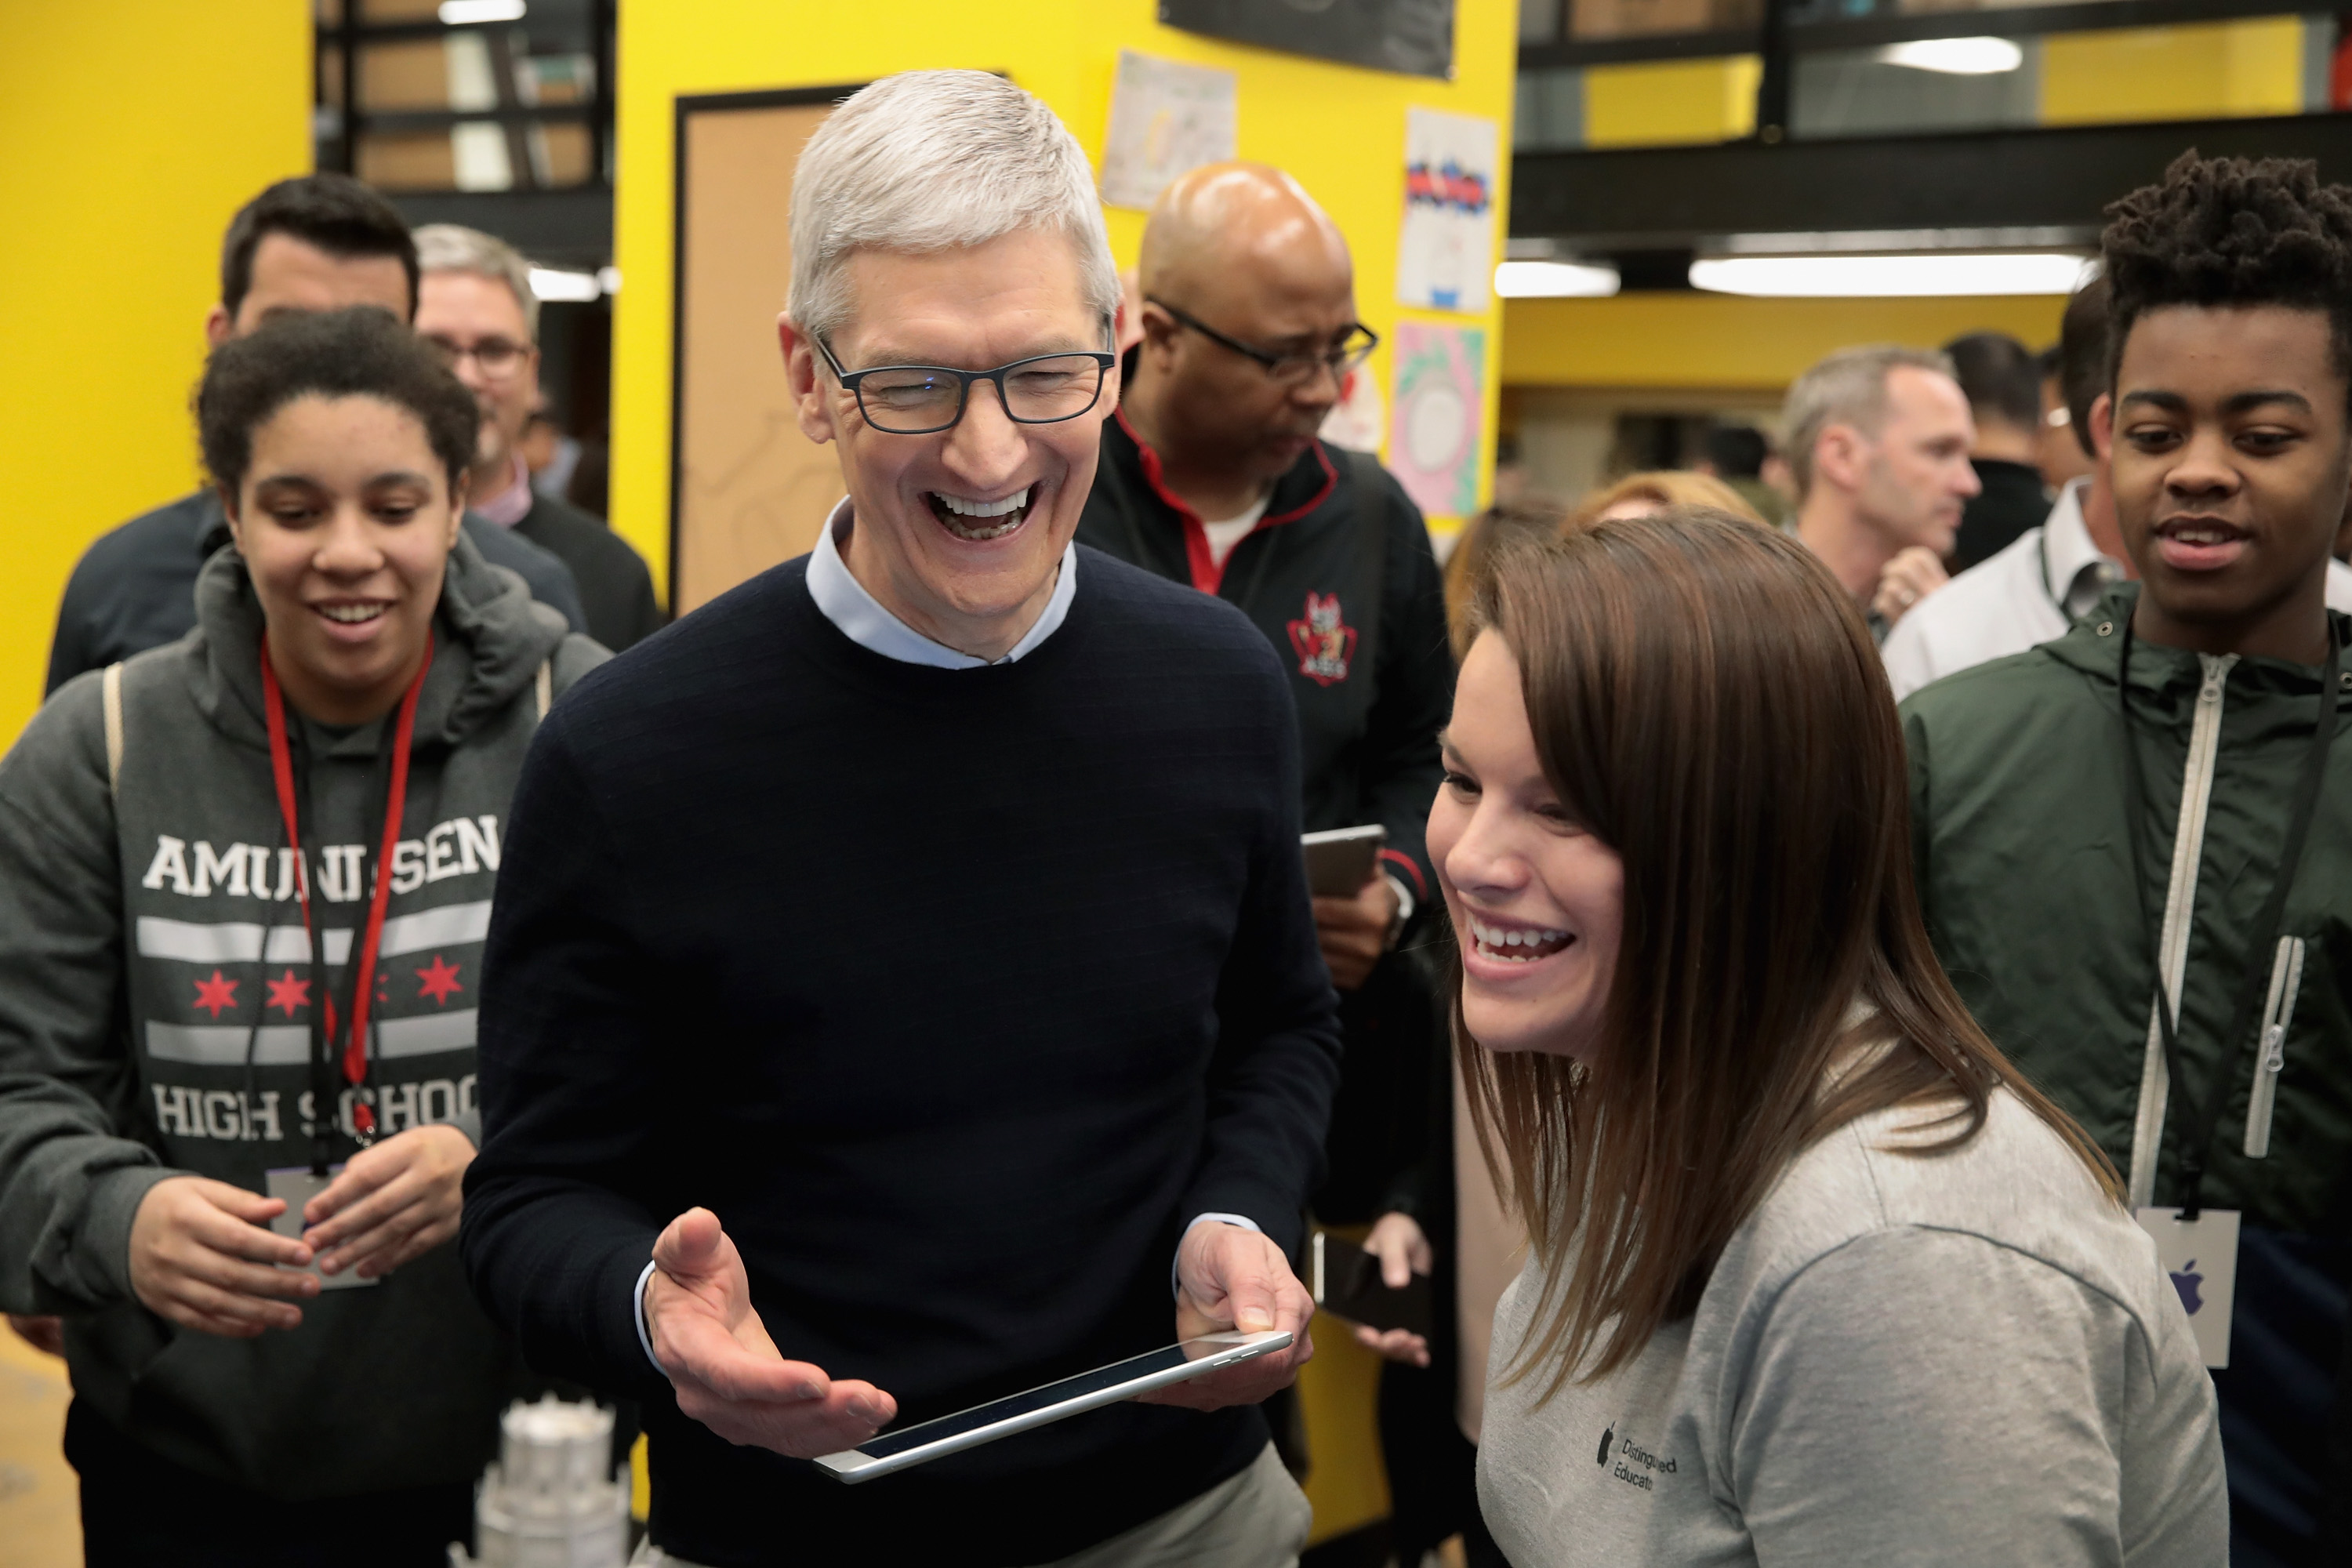 Apple CEO Tim Cook gets at an event to introduce the new 9.7-inch Apple iPad at Lane Tech College Prep High School in Chicago, Illinois.